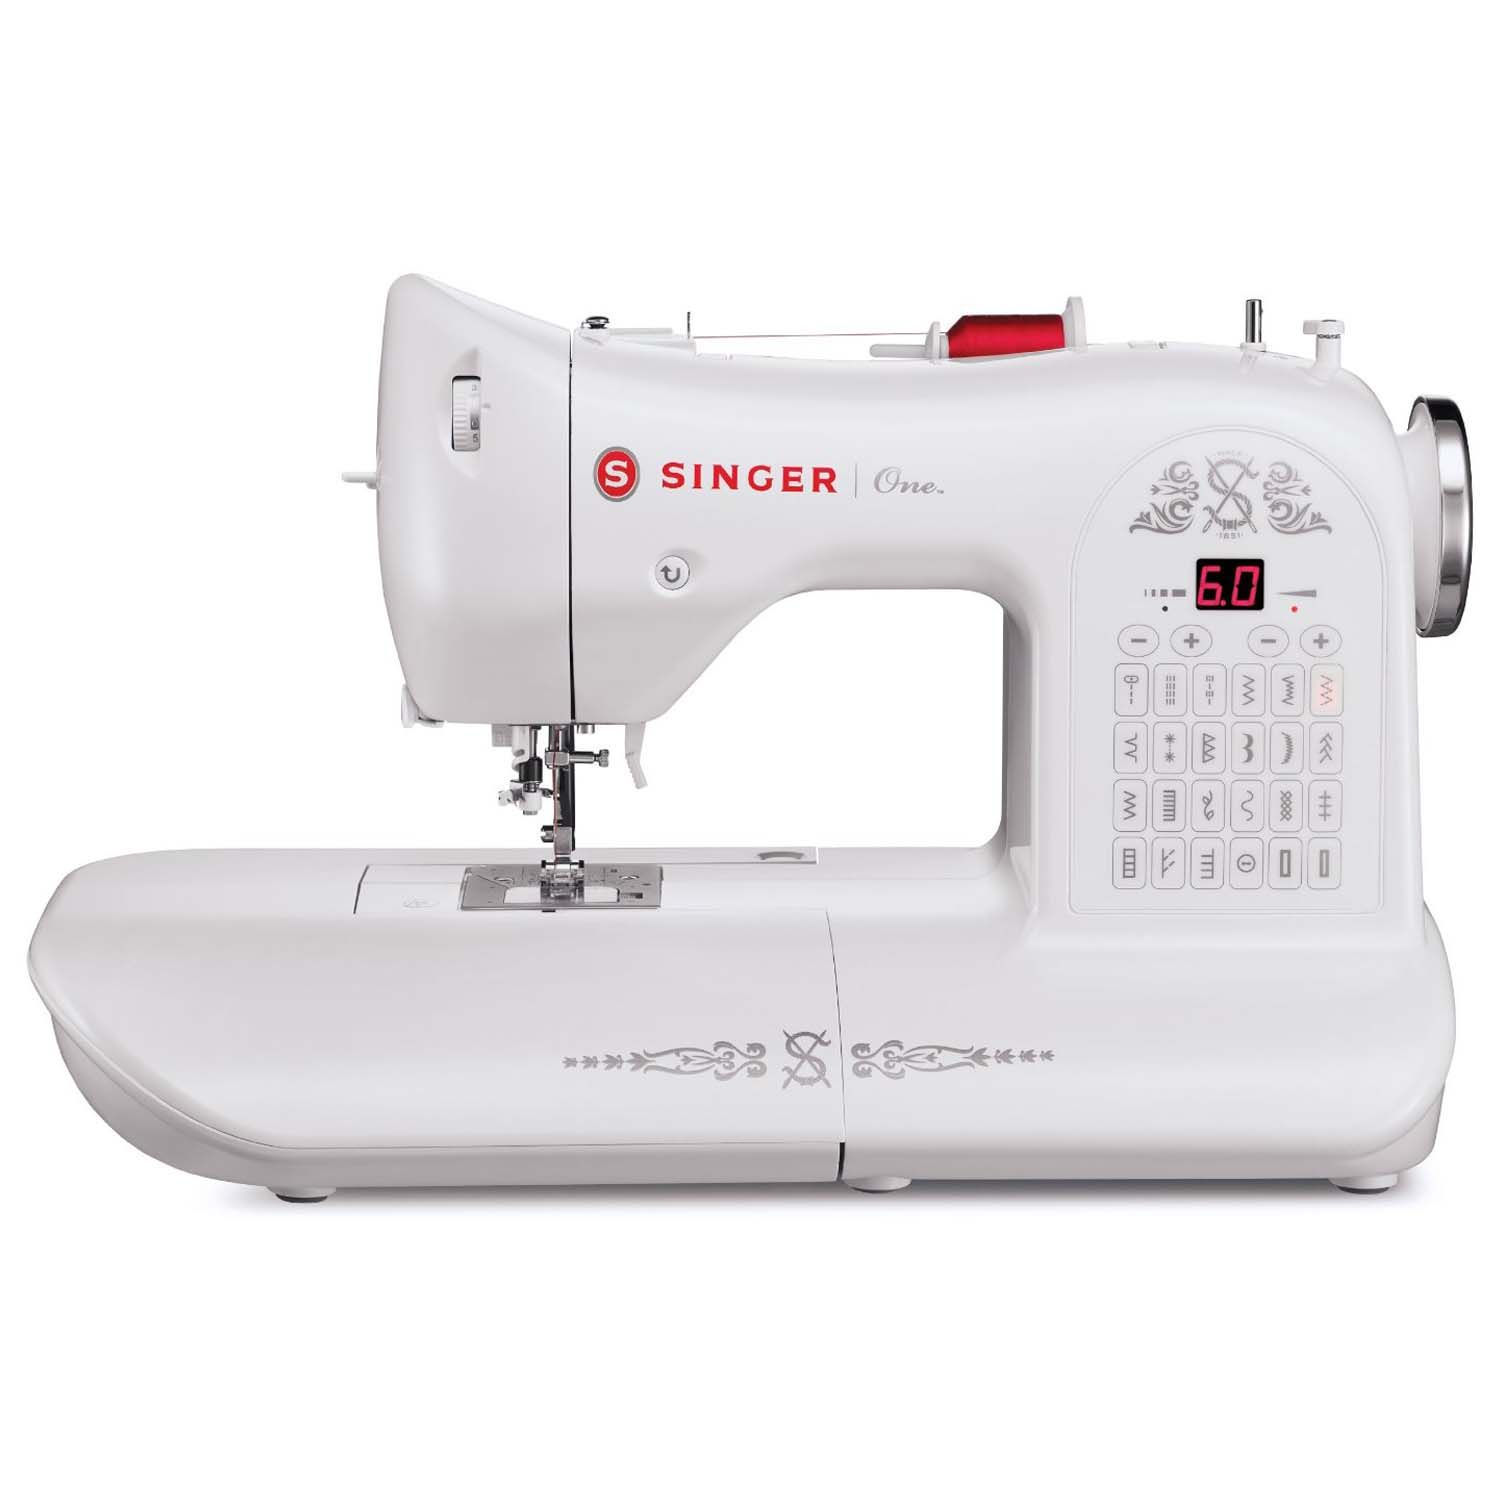 Singer One Sewing Machine - Retro styled sewing machine with a bit ...